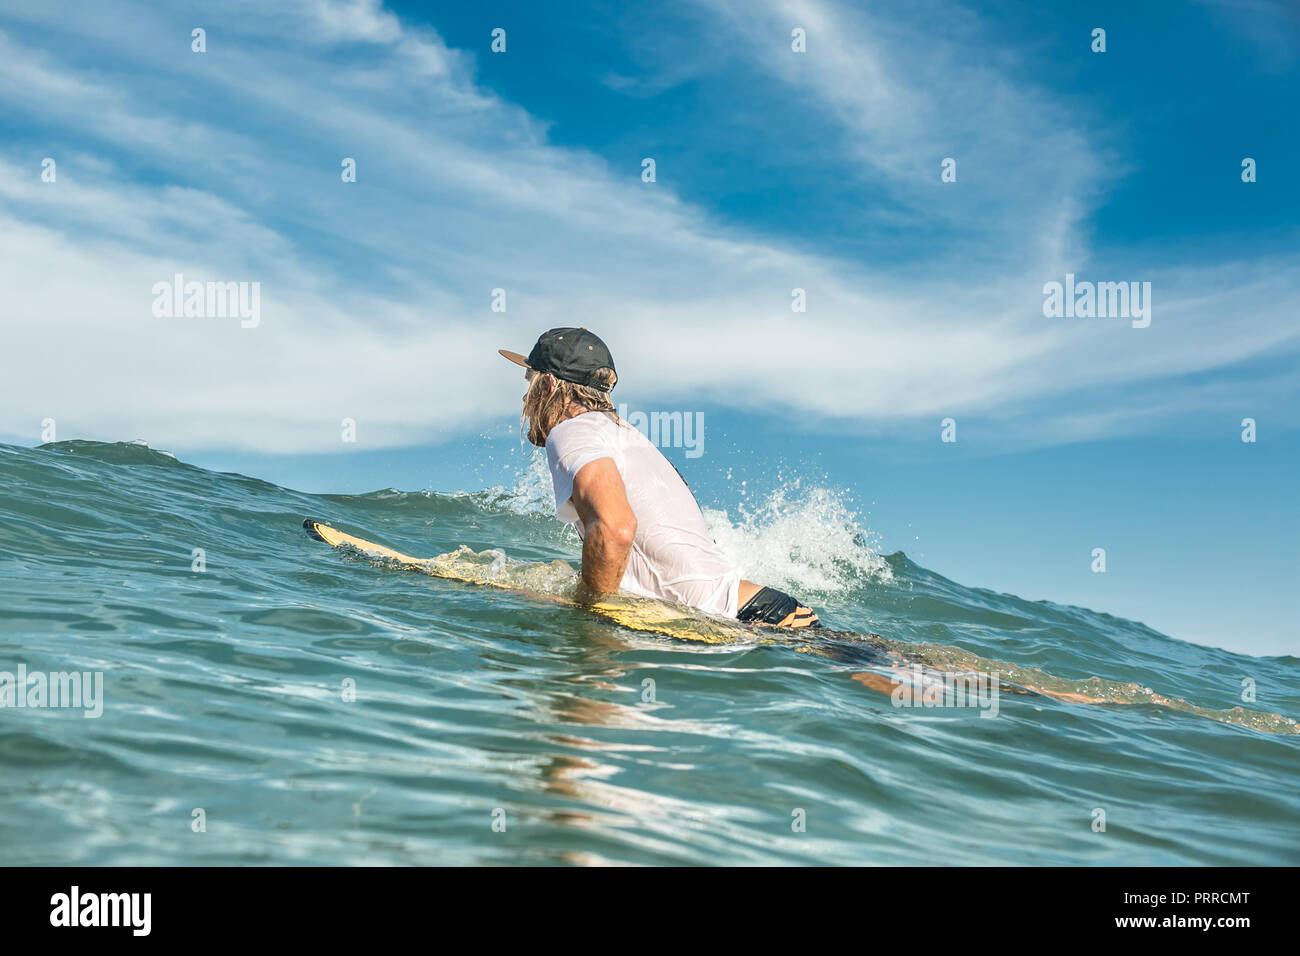 side view of male surfer swimming on surfing board in ocean at Nusa Dua Beach, Bali, Indonesia - Stock Image